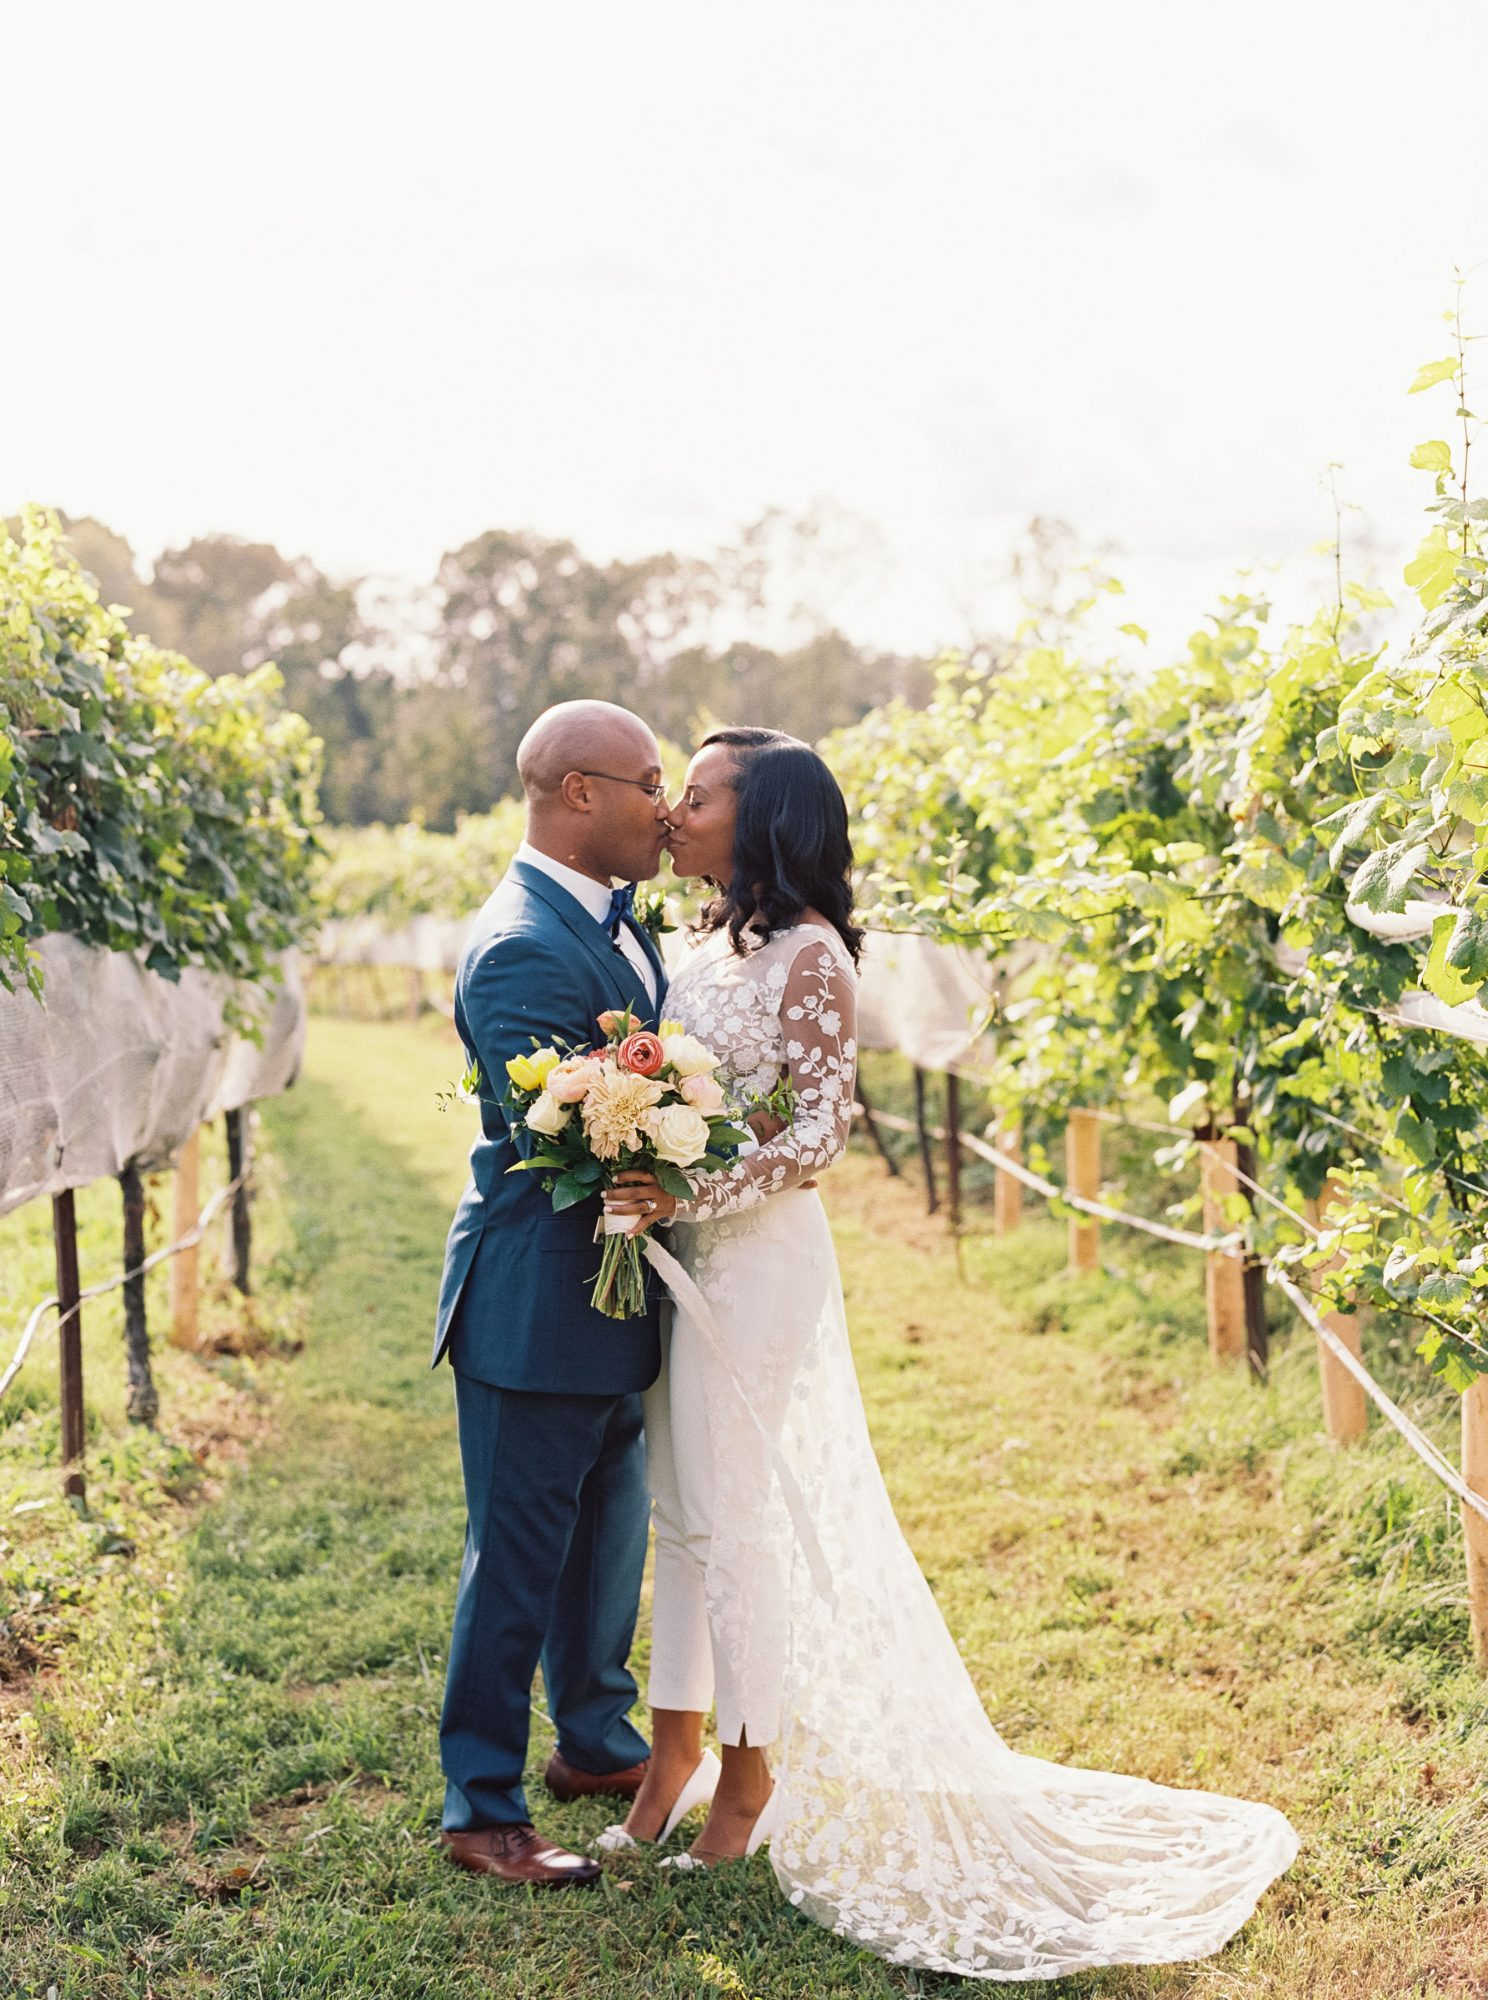 cayla david wedding couple kiss in vineyard